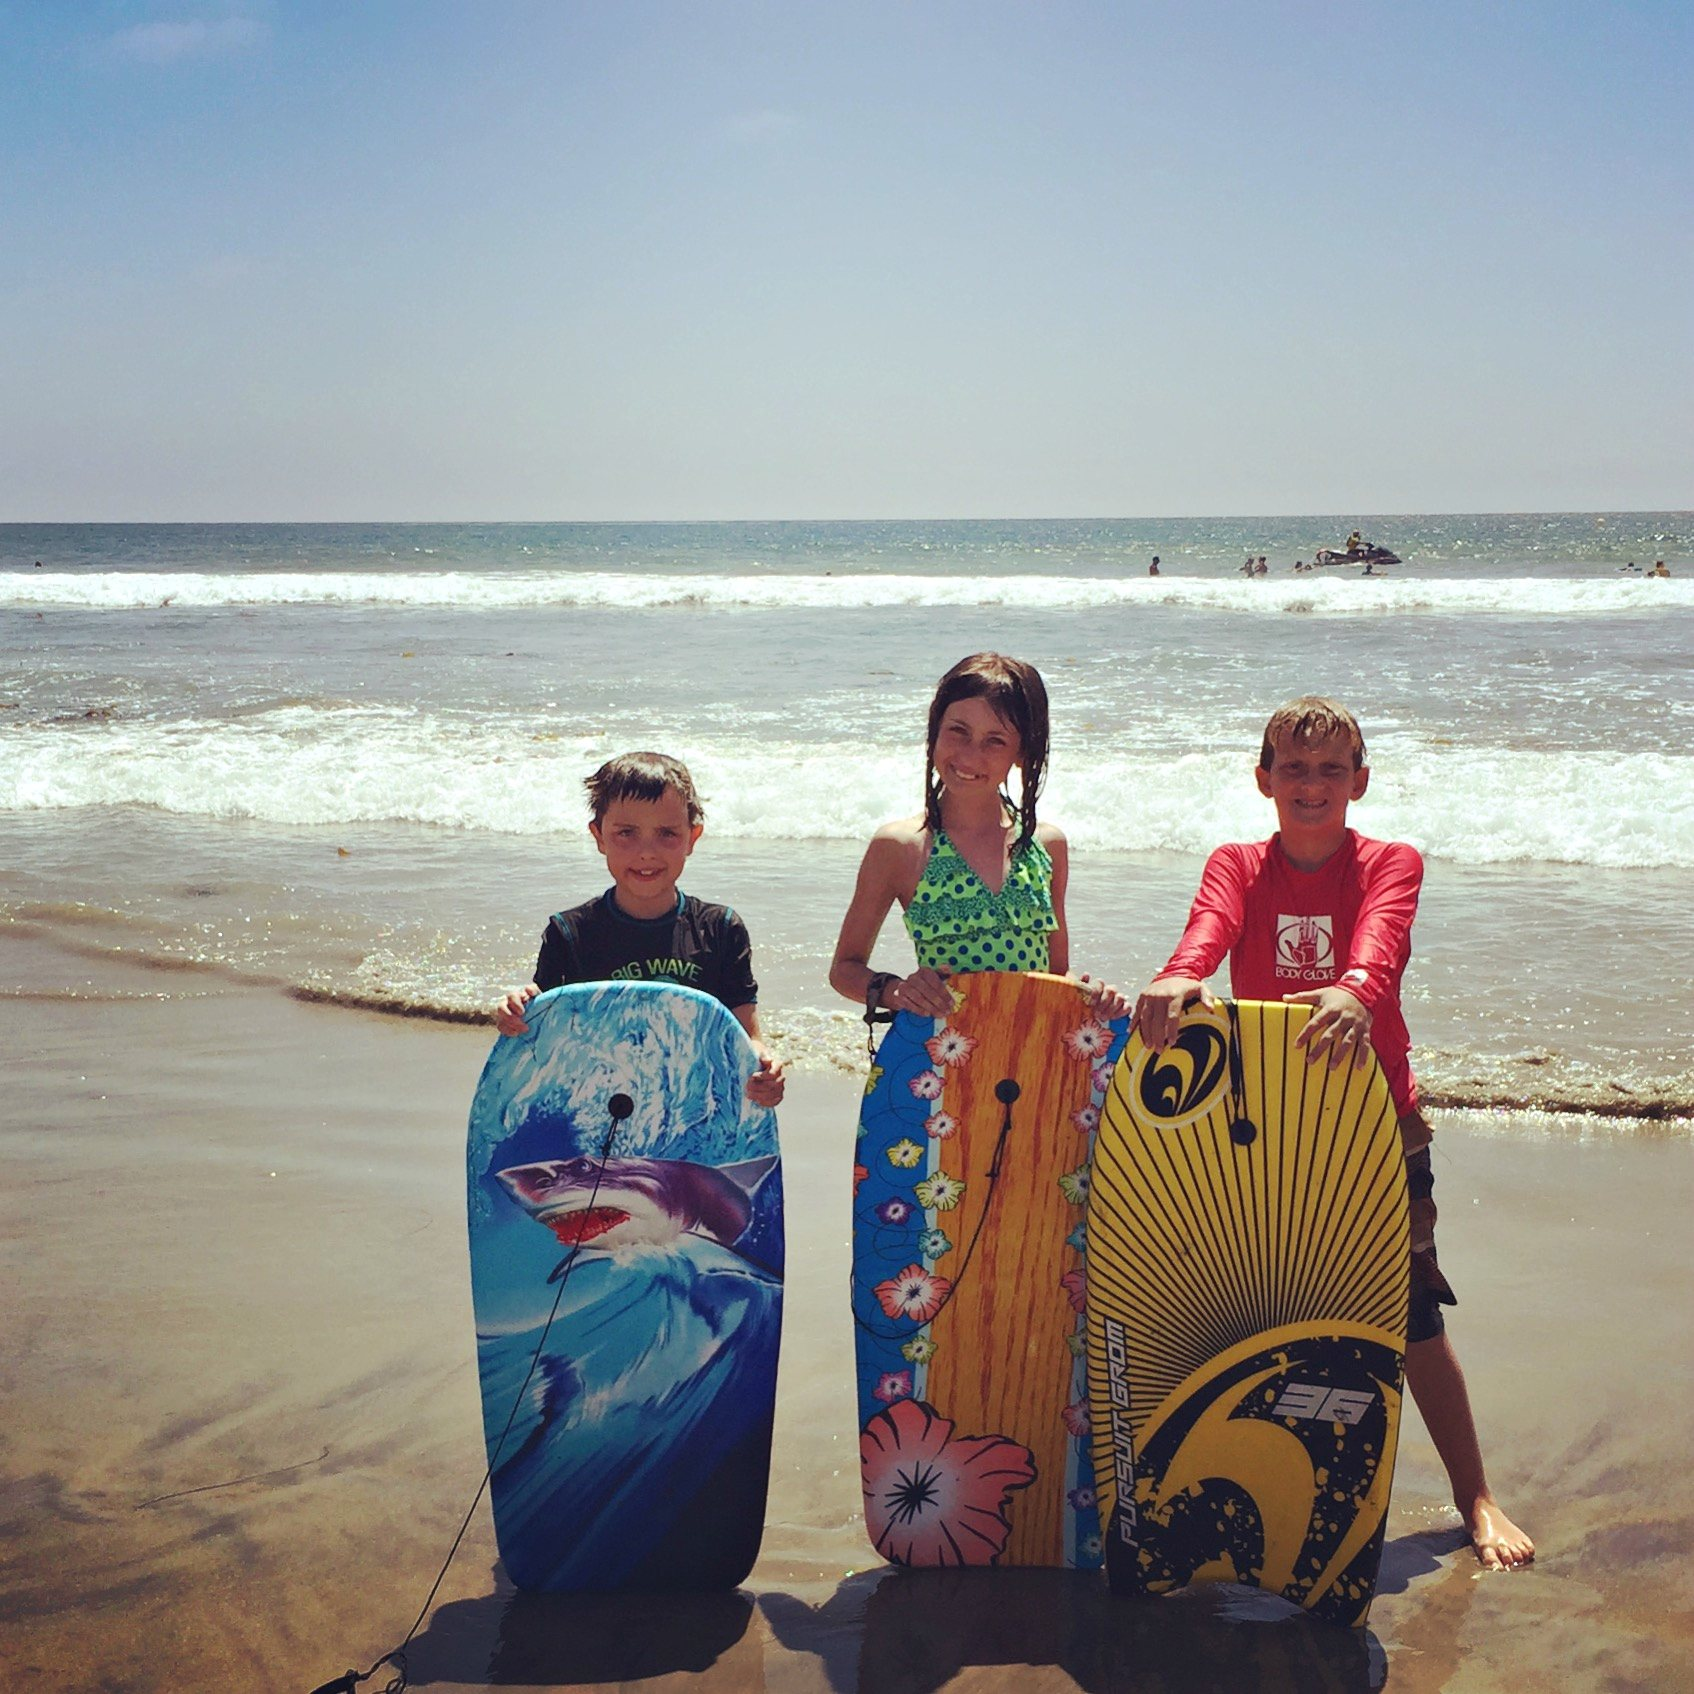 Boogie boarding at Fletcher Cove in Solana Beach - Fabulous fun in Solana Beach & Del Mar